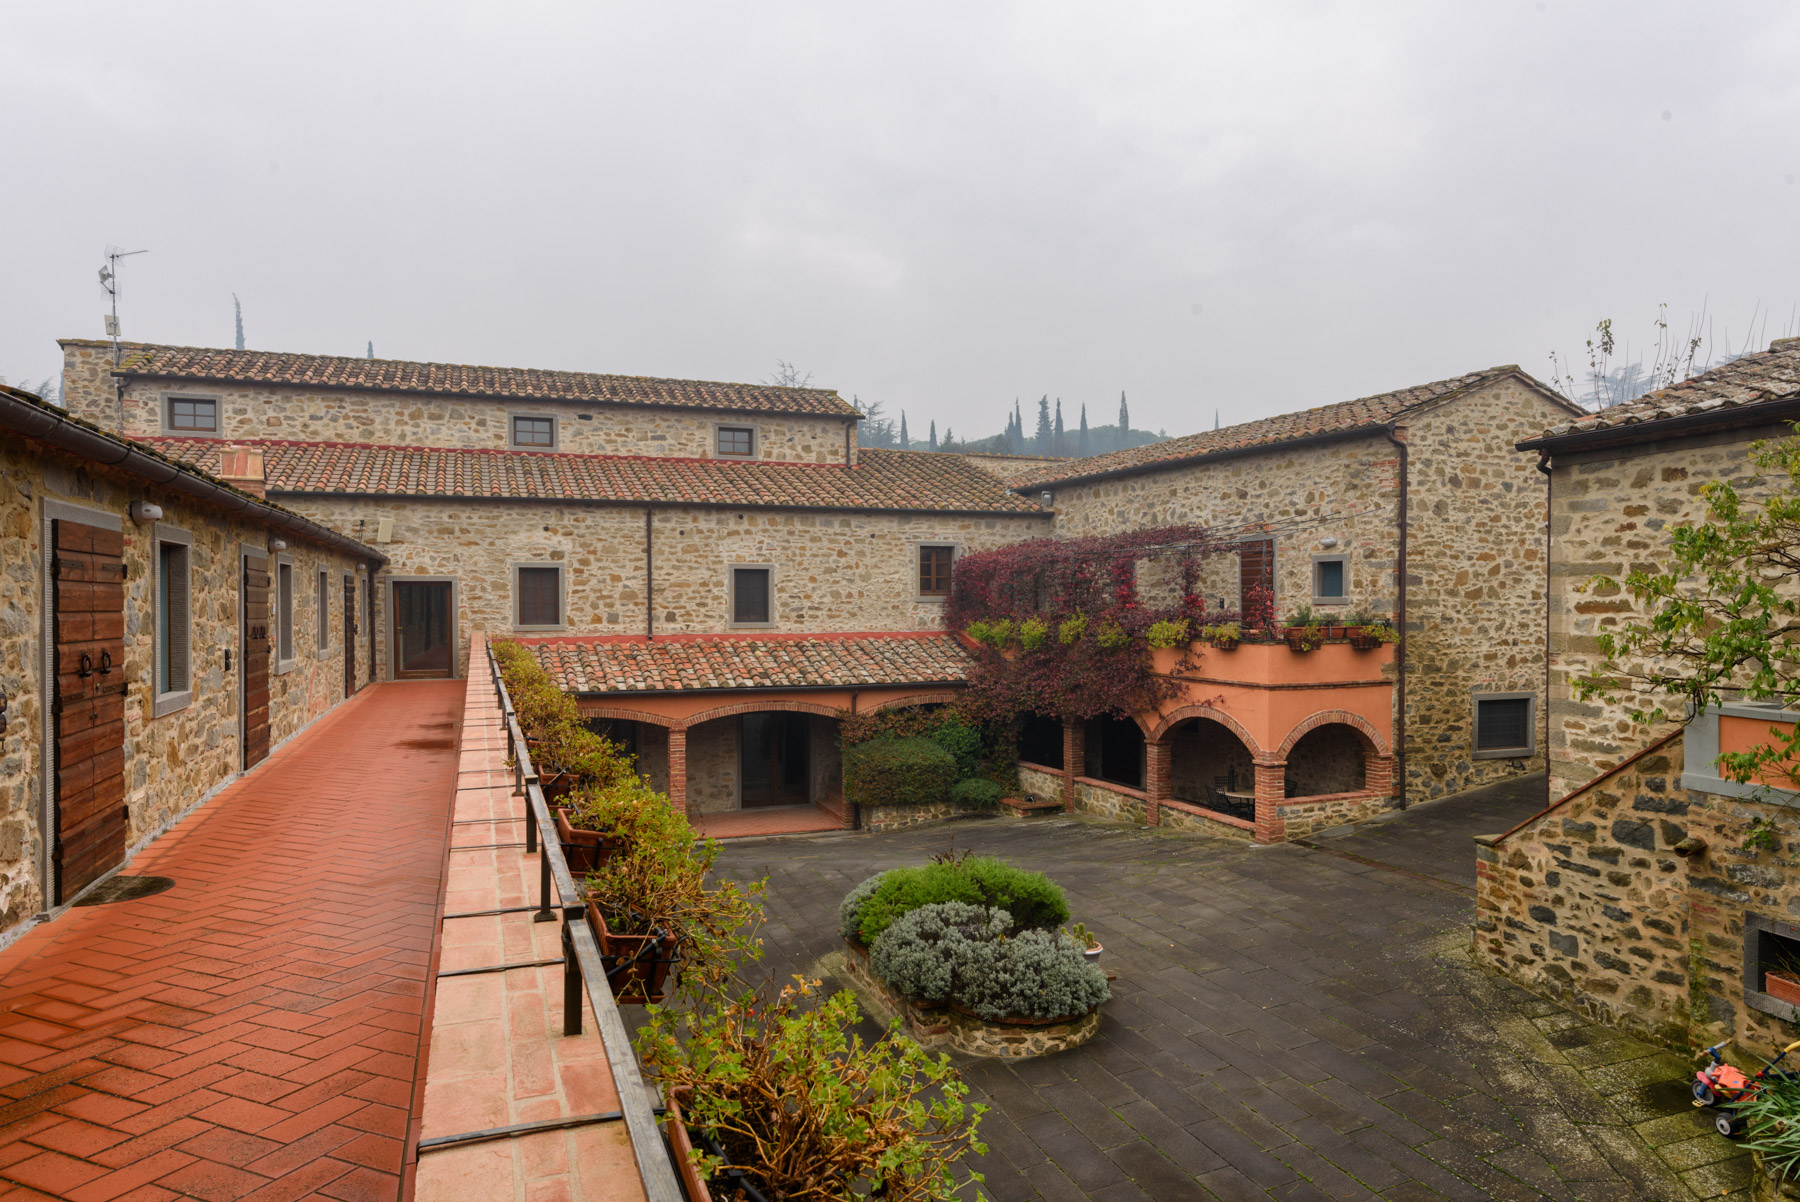 Additional photo for property listing at Lovely property in Cortona countryside Nucleo Abitativo Sant'Angelo Cortona, Arezzo 52044 Italia